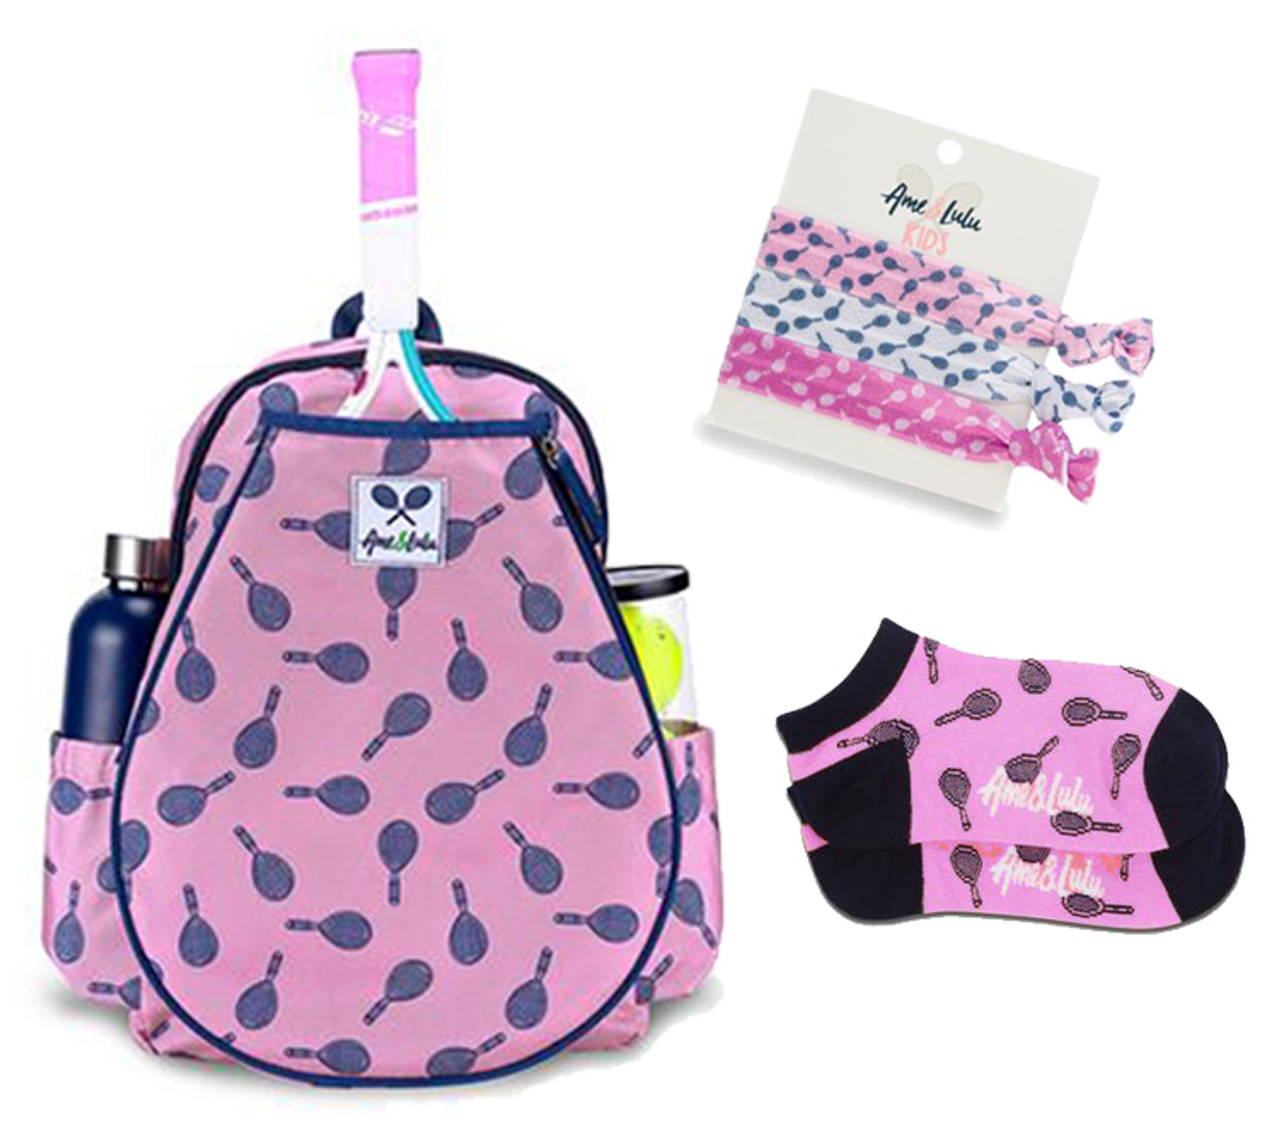 Ame & Lulu Little Love Tennis Backpack - Mini Racquets Set